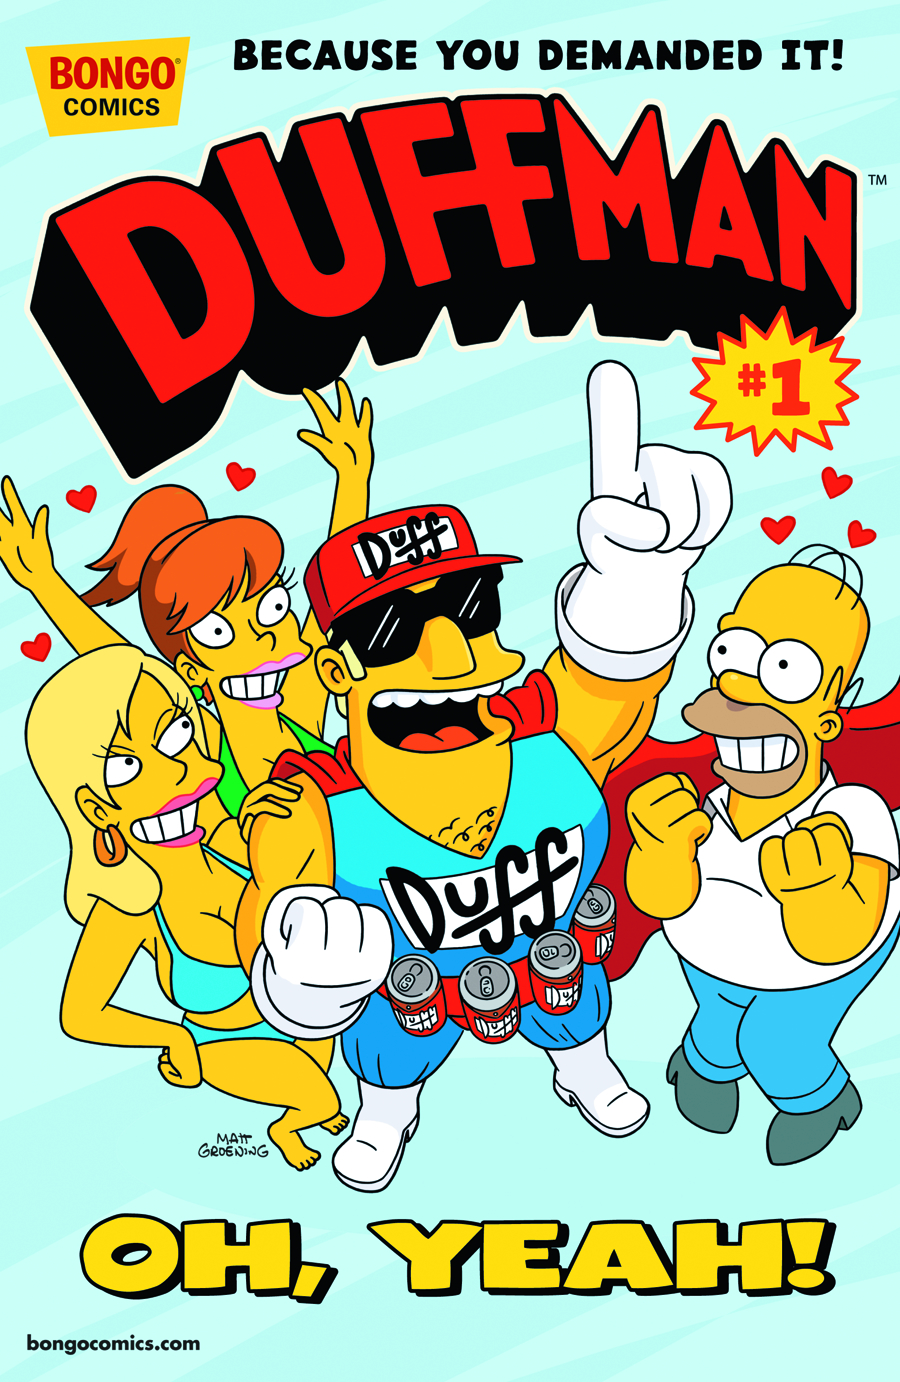 DUFFMAN ADVENTURES #1